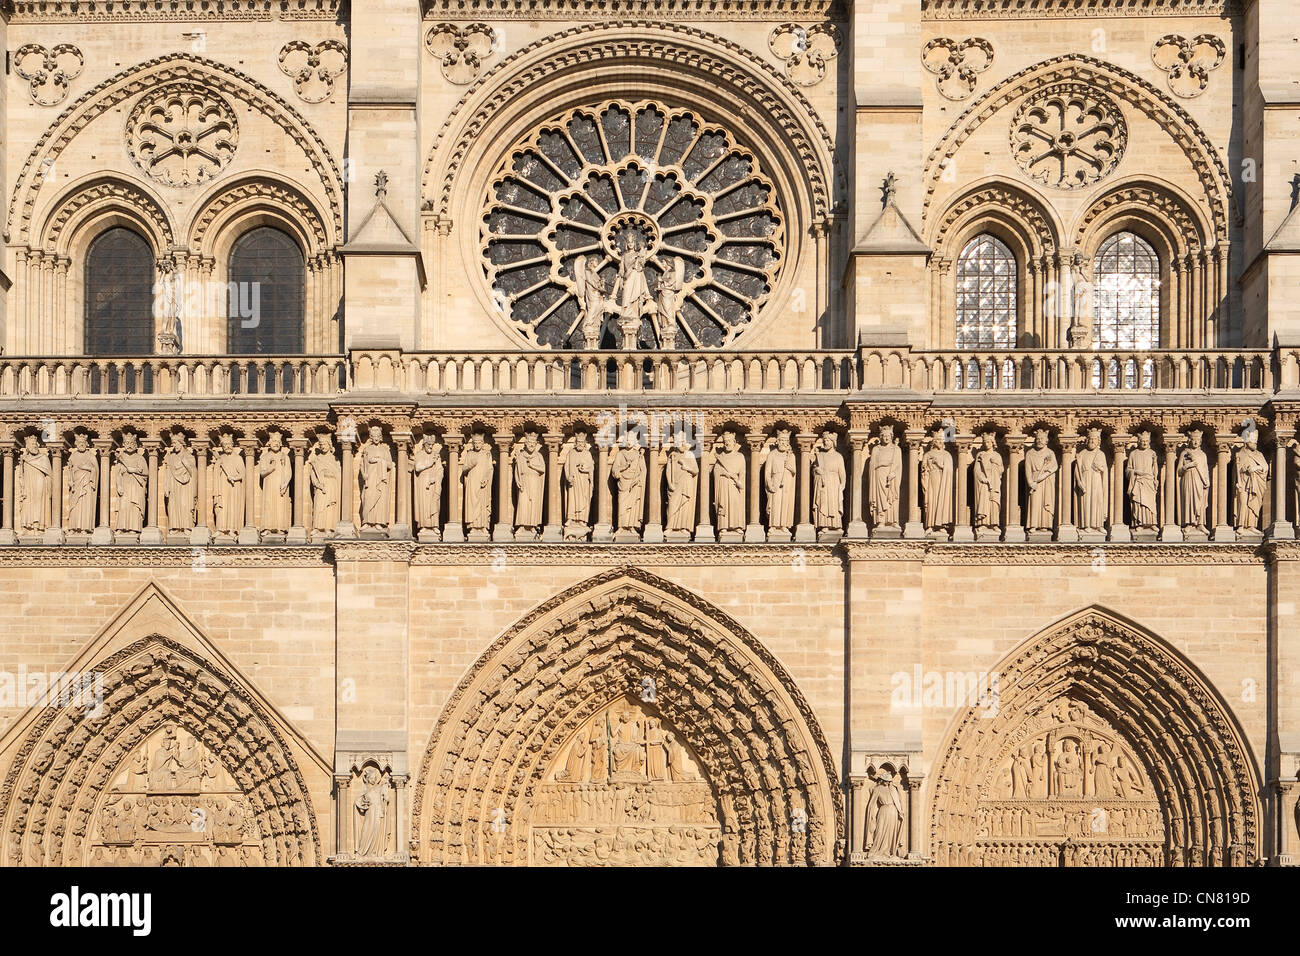 France, Paris, Notre Dame de Paris cathedral, the western facade, the Rose, the gallery of the Kings and the portals - Stock Image